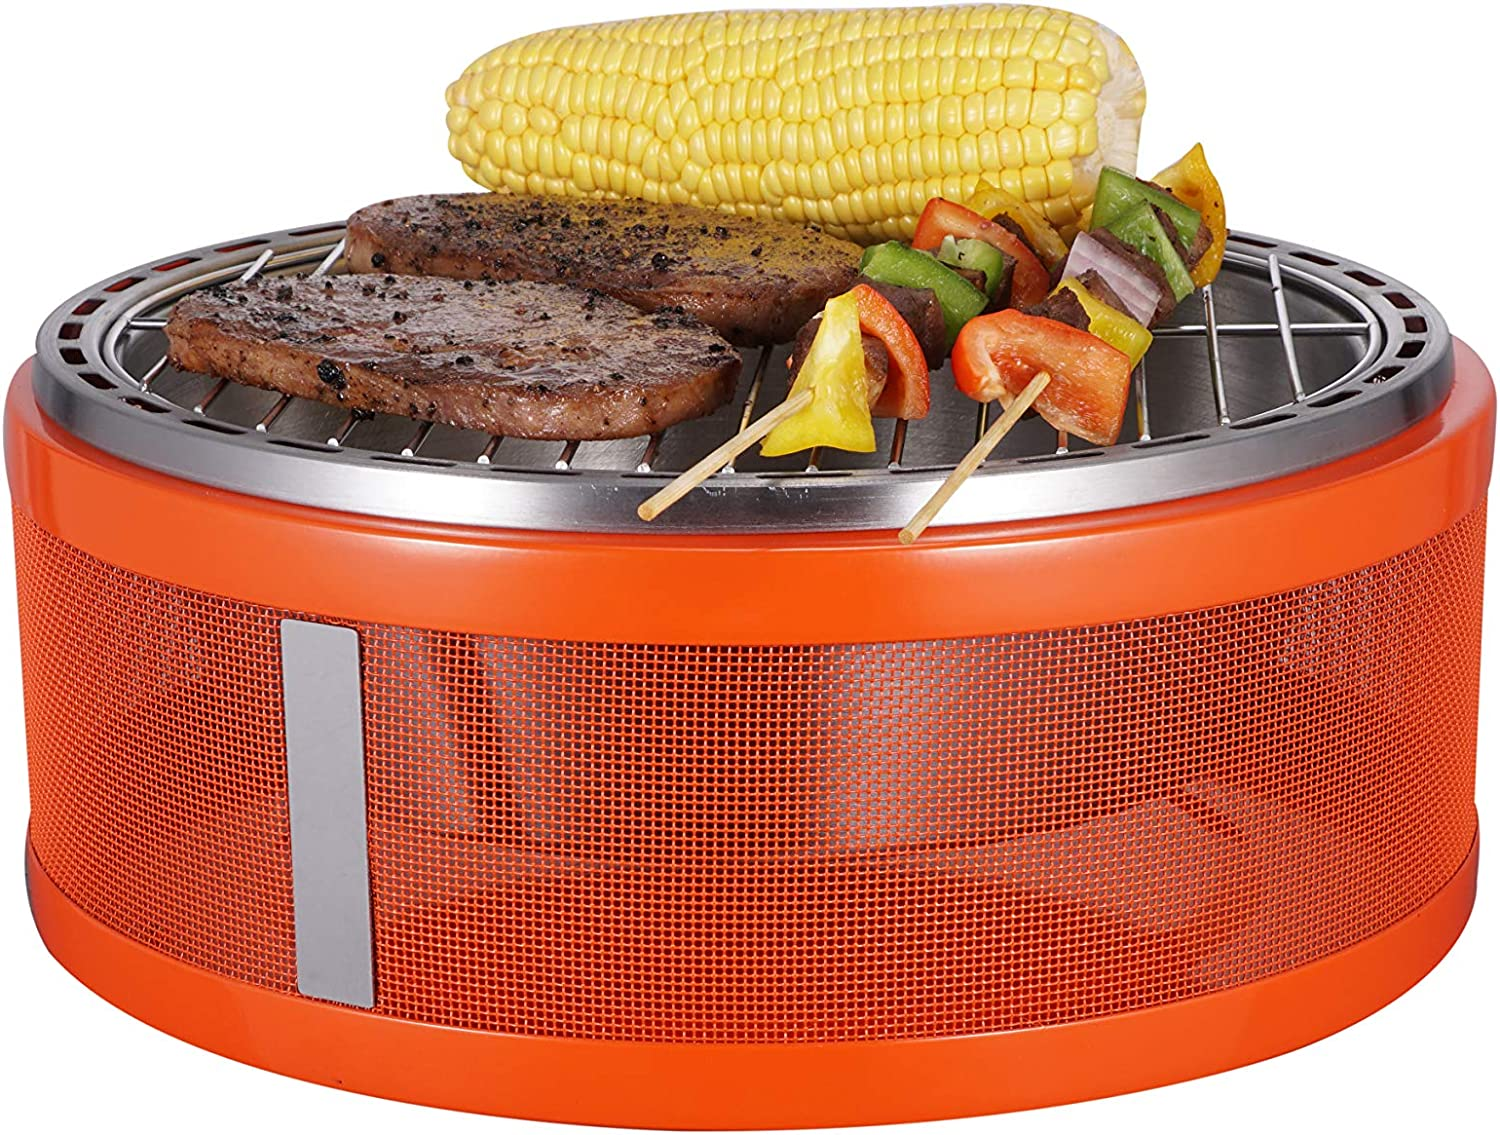 Portable Charcoal Grill,yakitori Grill, portable grill Suitable for Picnic, Garden, Backyard, Camping, Red